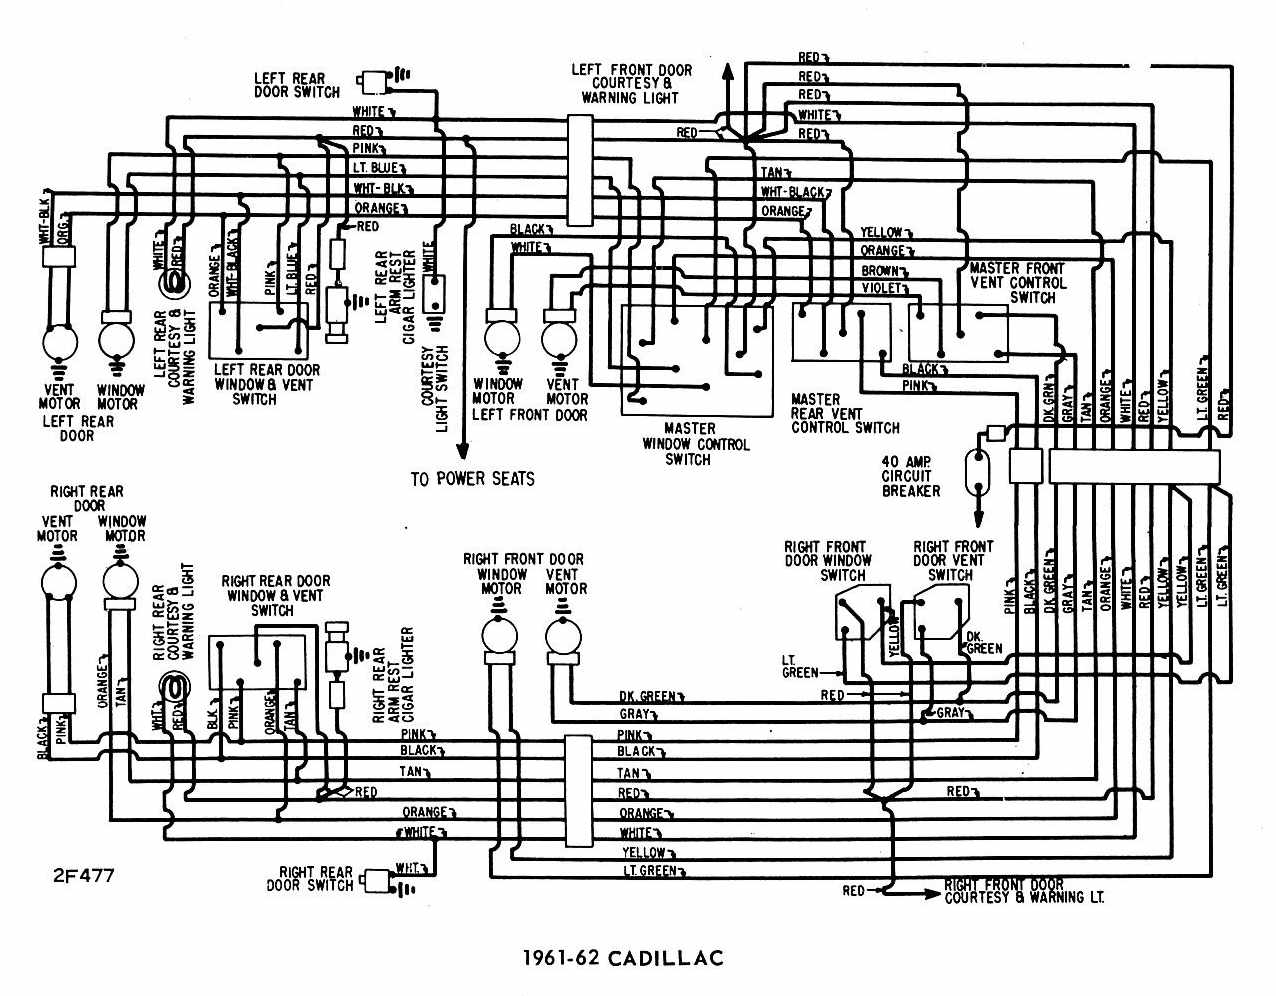 Cadillac - Car Manuals, Wiring Diagrams PDF & Fault Codes